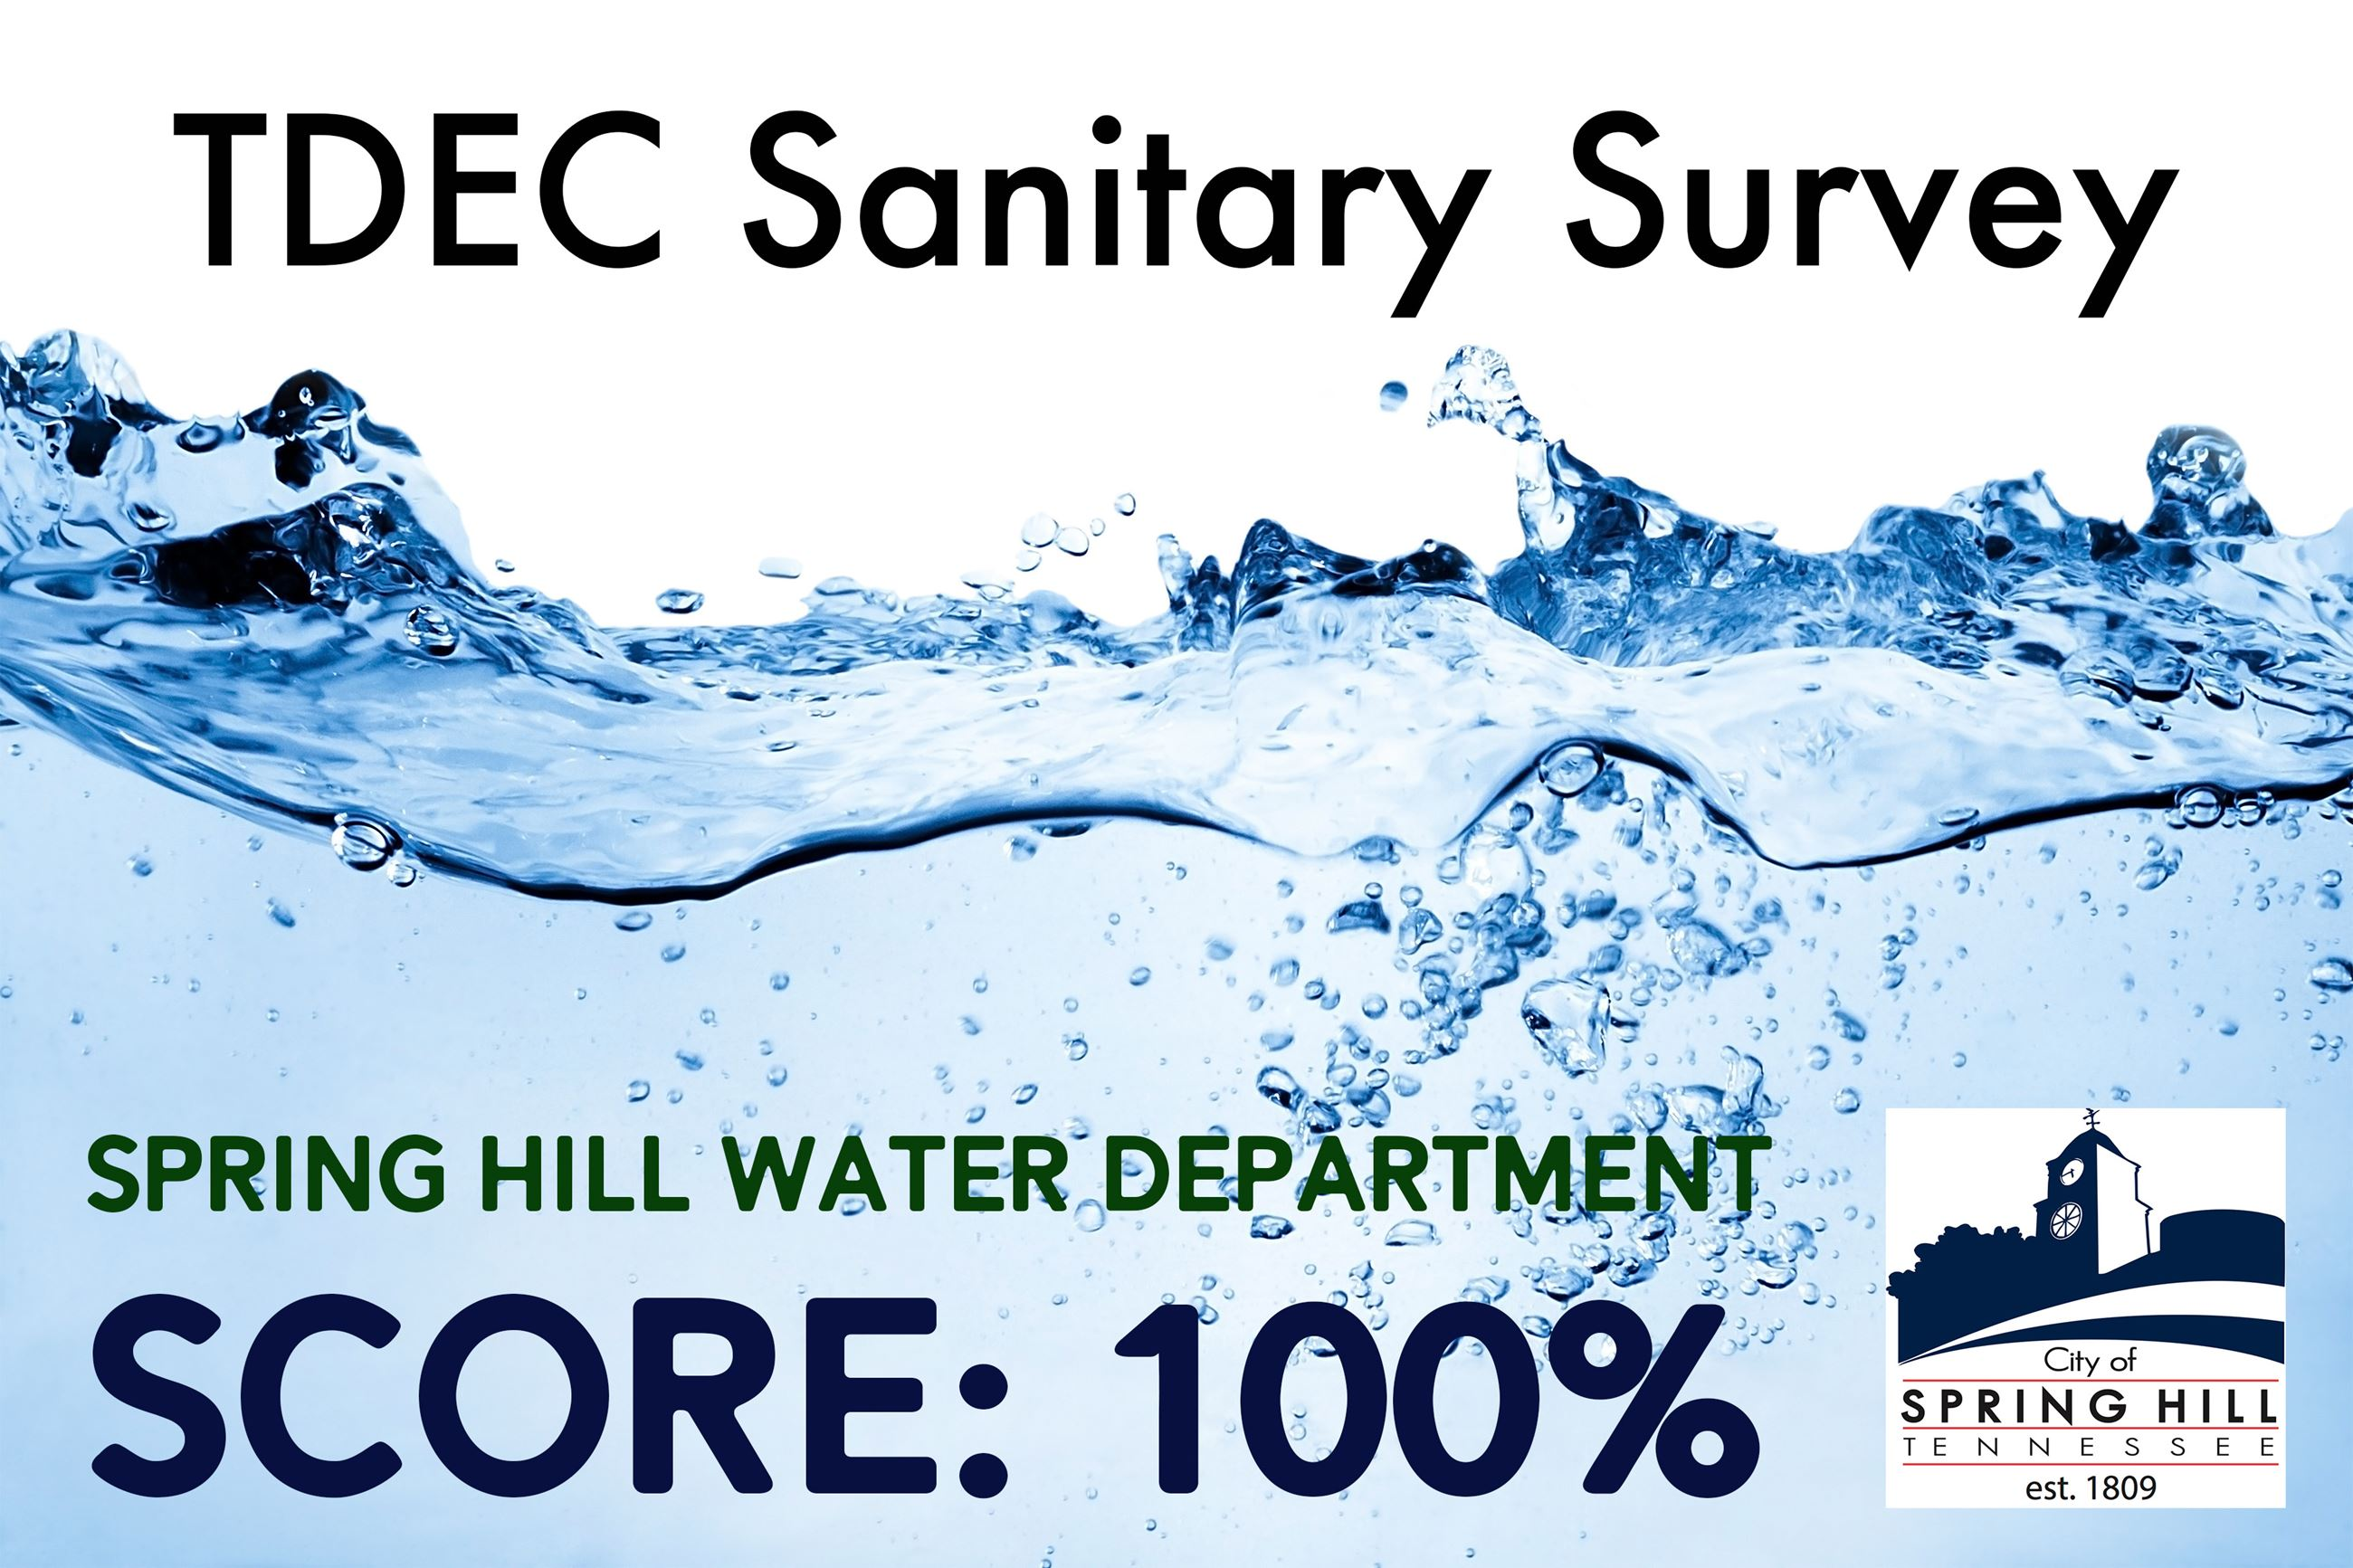 Spring Hill Water Department scores one hundred percent on TDEC Sanitary Survey